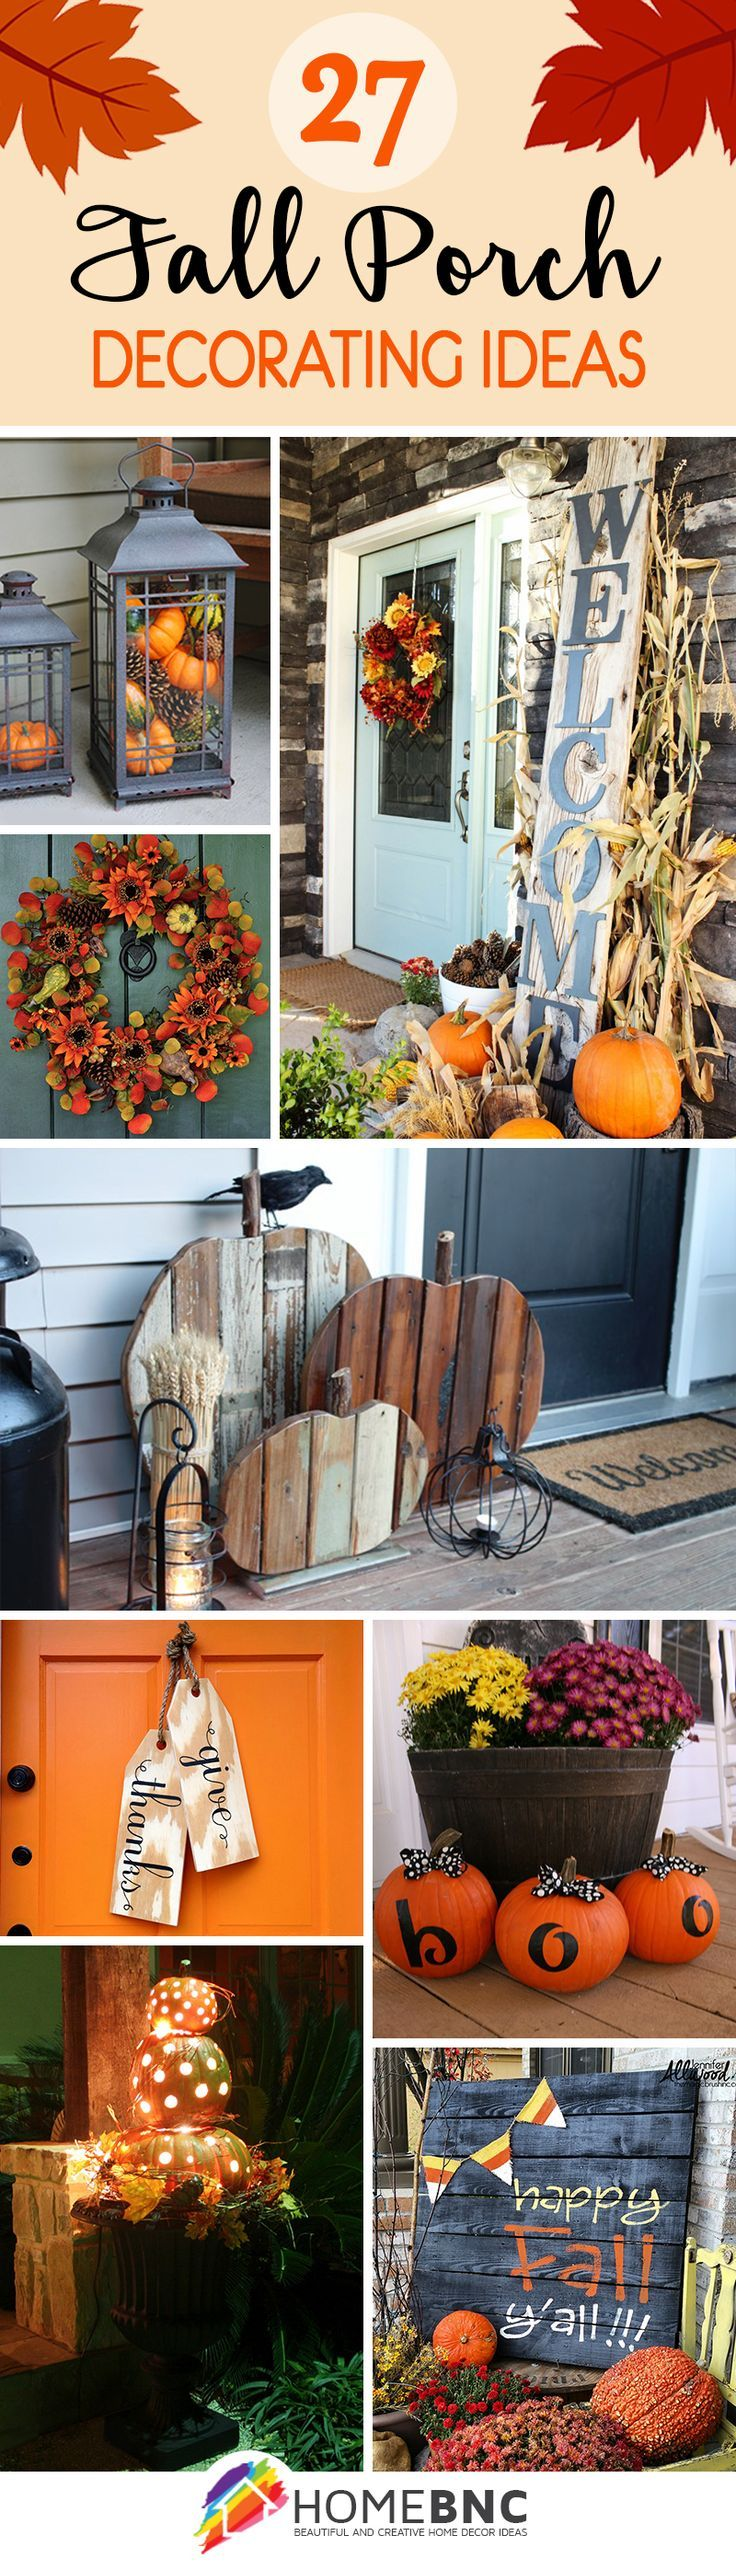 27 creative fall porch decorating ideas to make yours unforgettable - Fall Harvest Decor